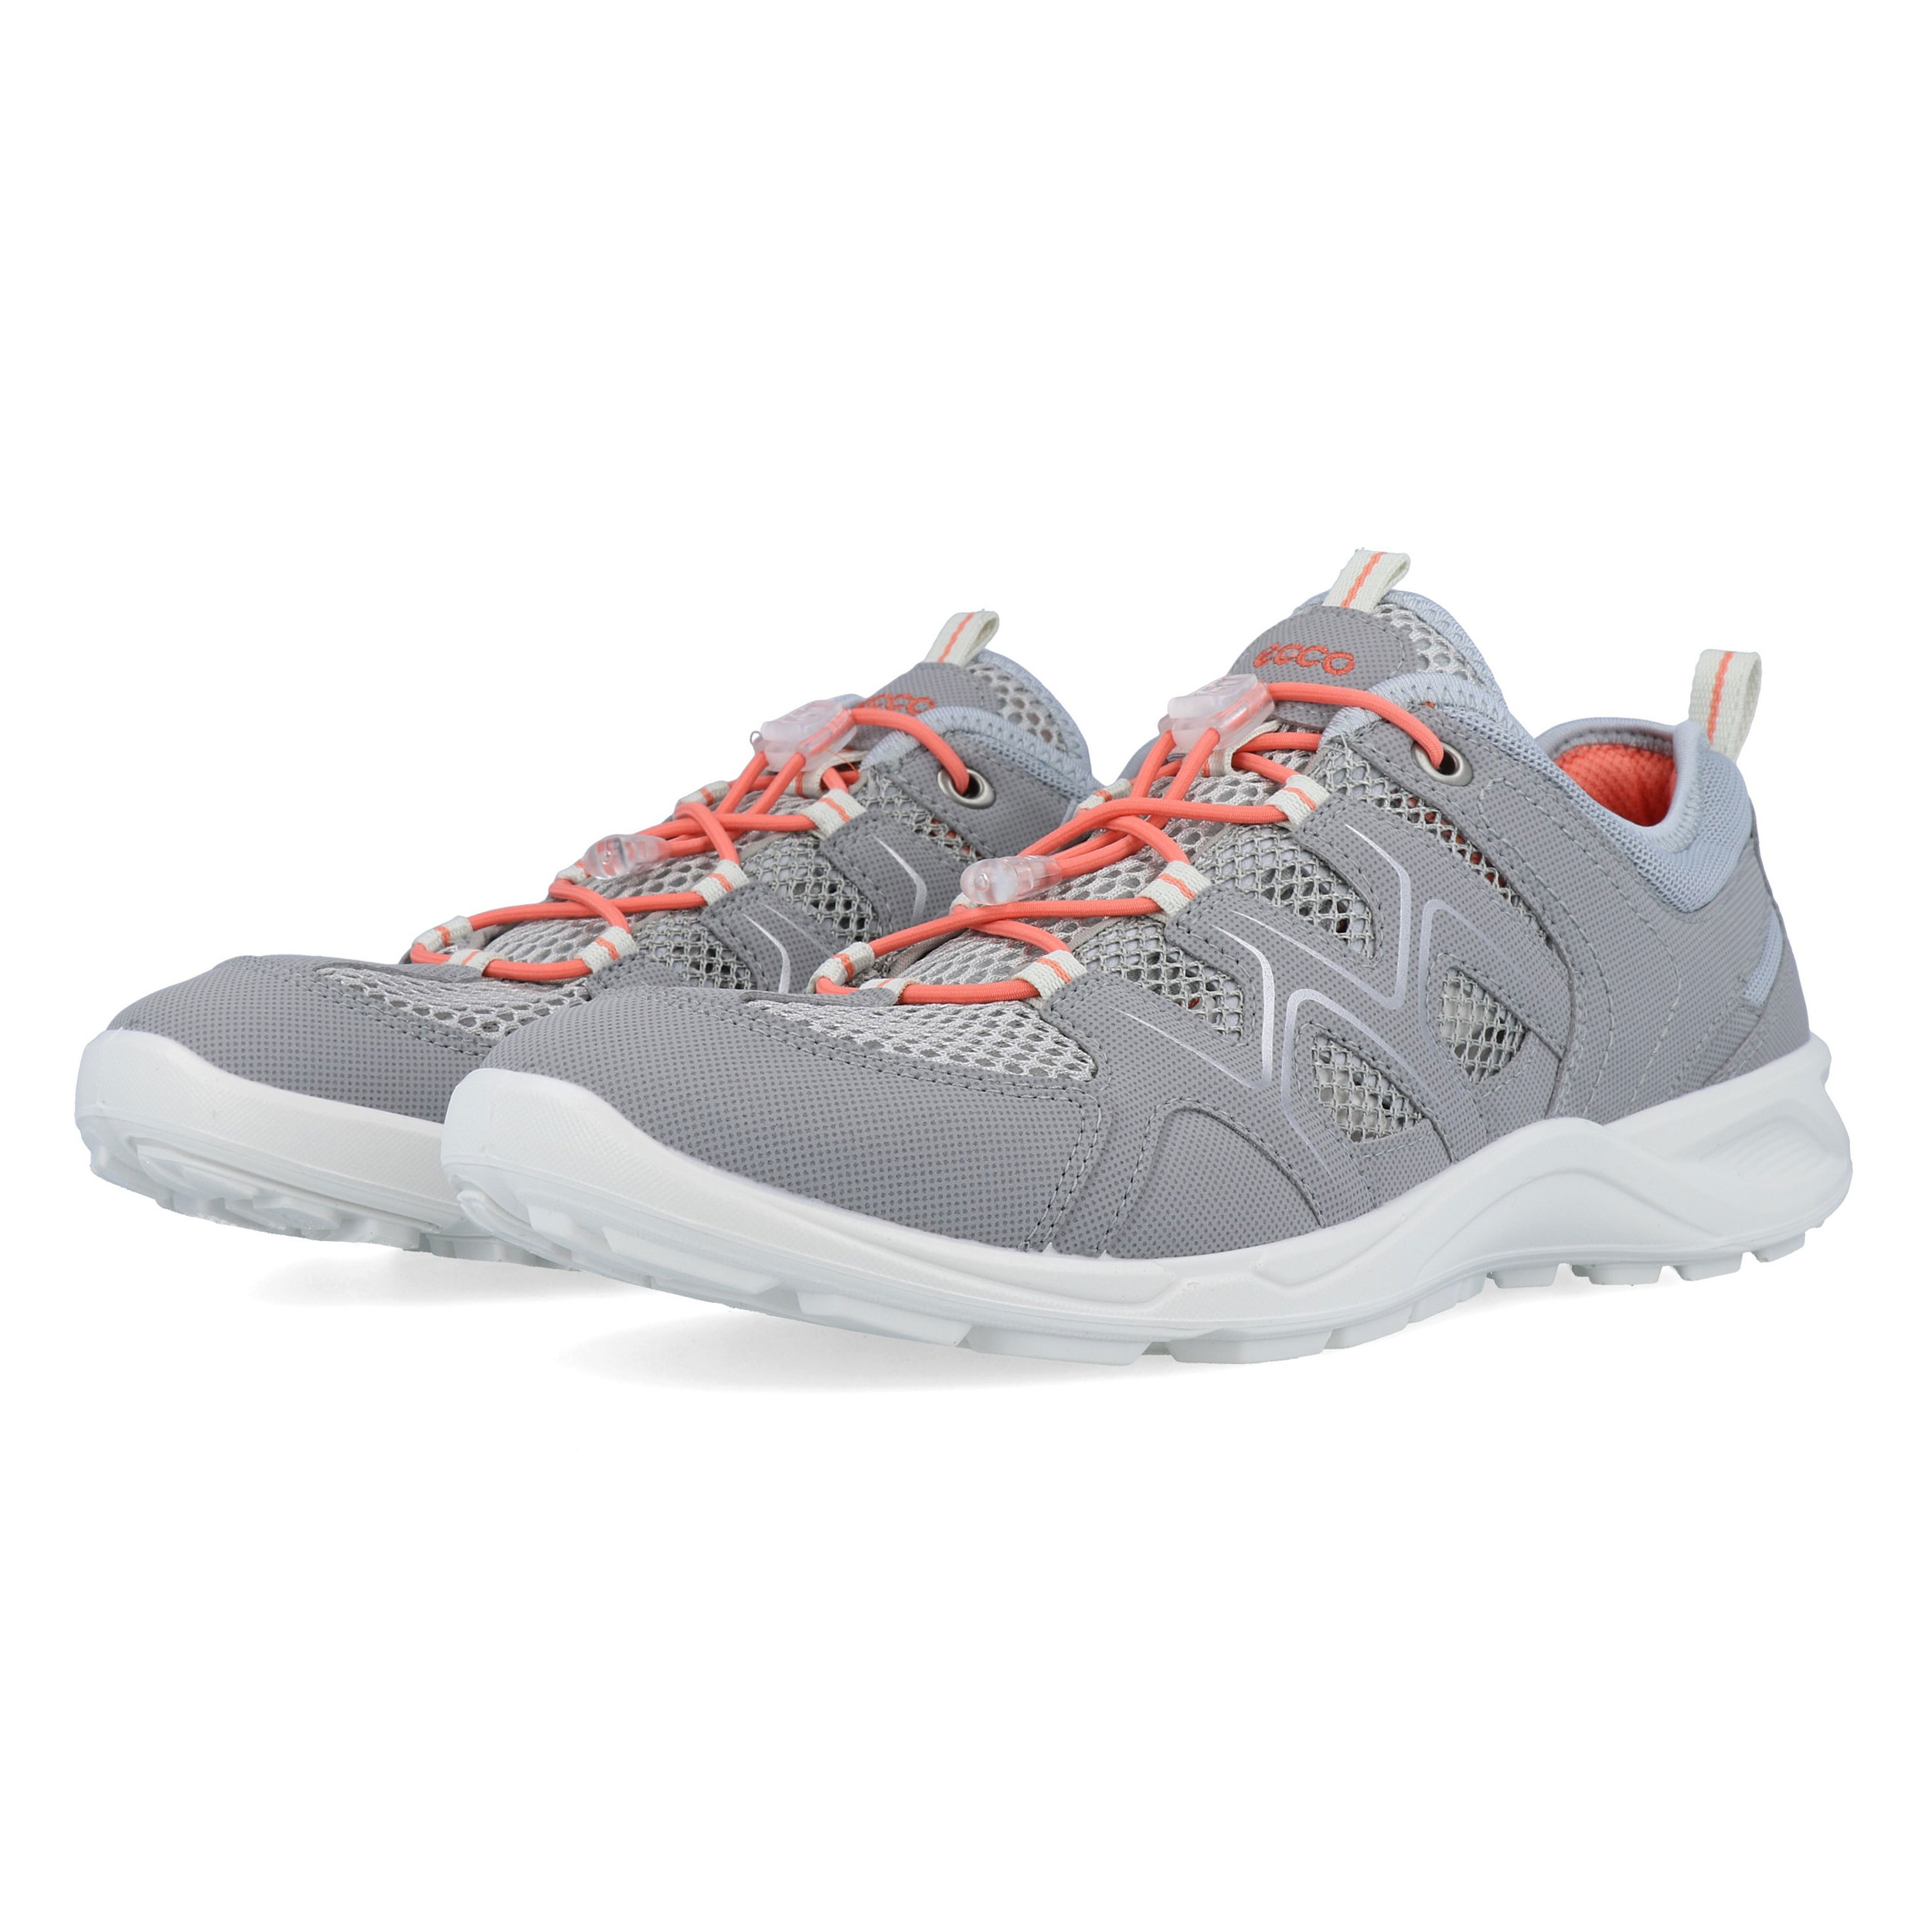 Details about Ecco Womens Terracruise LT Walking Shoes Grey Sports Outdoors Breathable